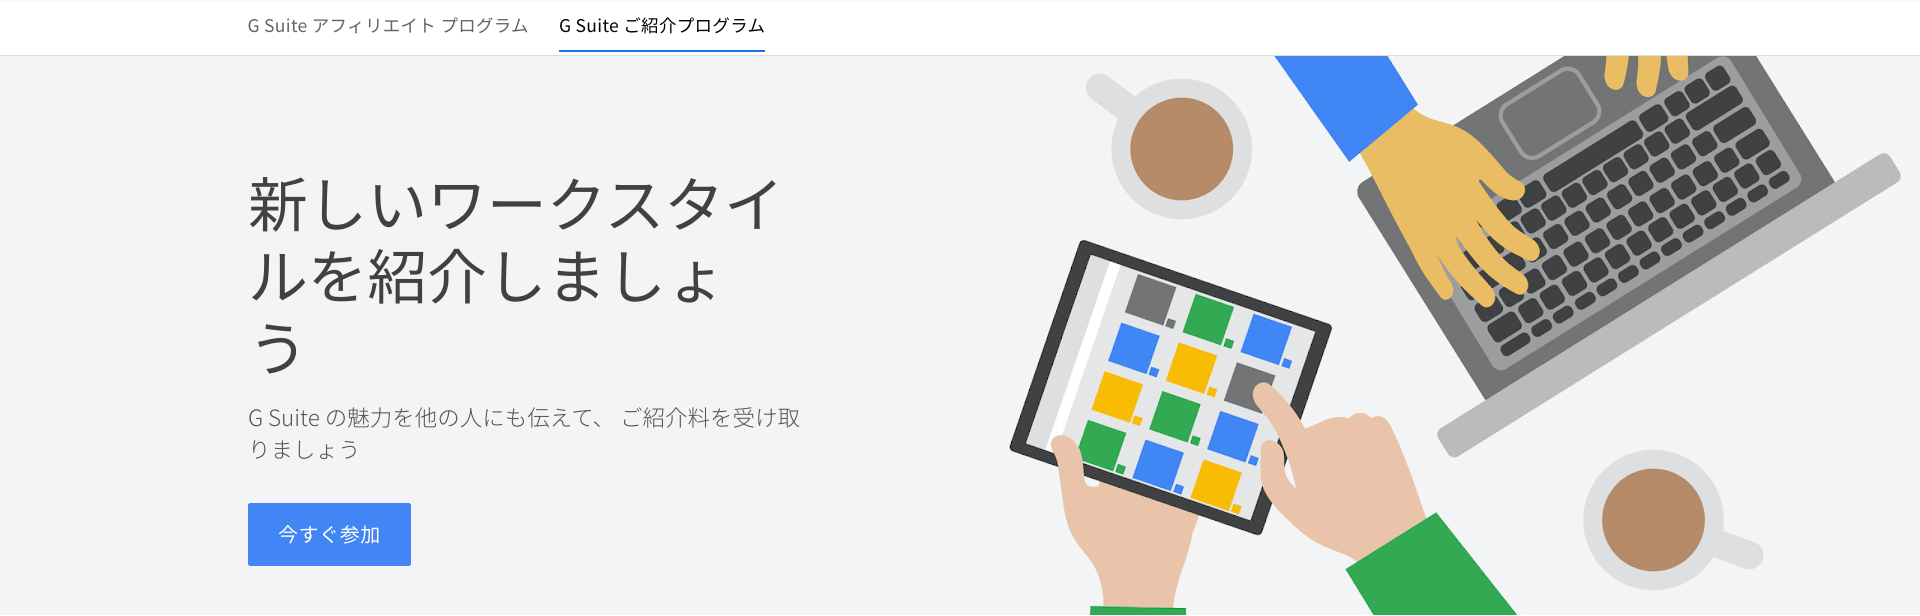 G Suite ご紹介プログラム